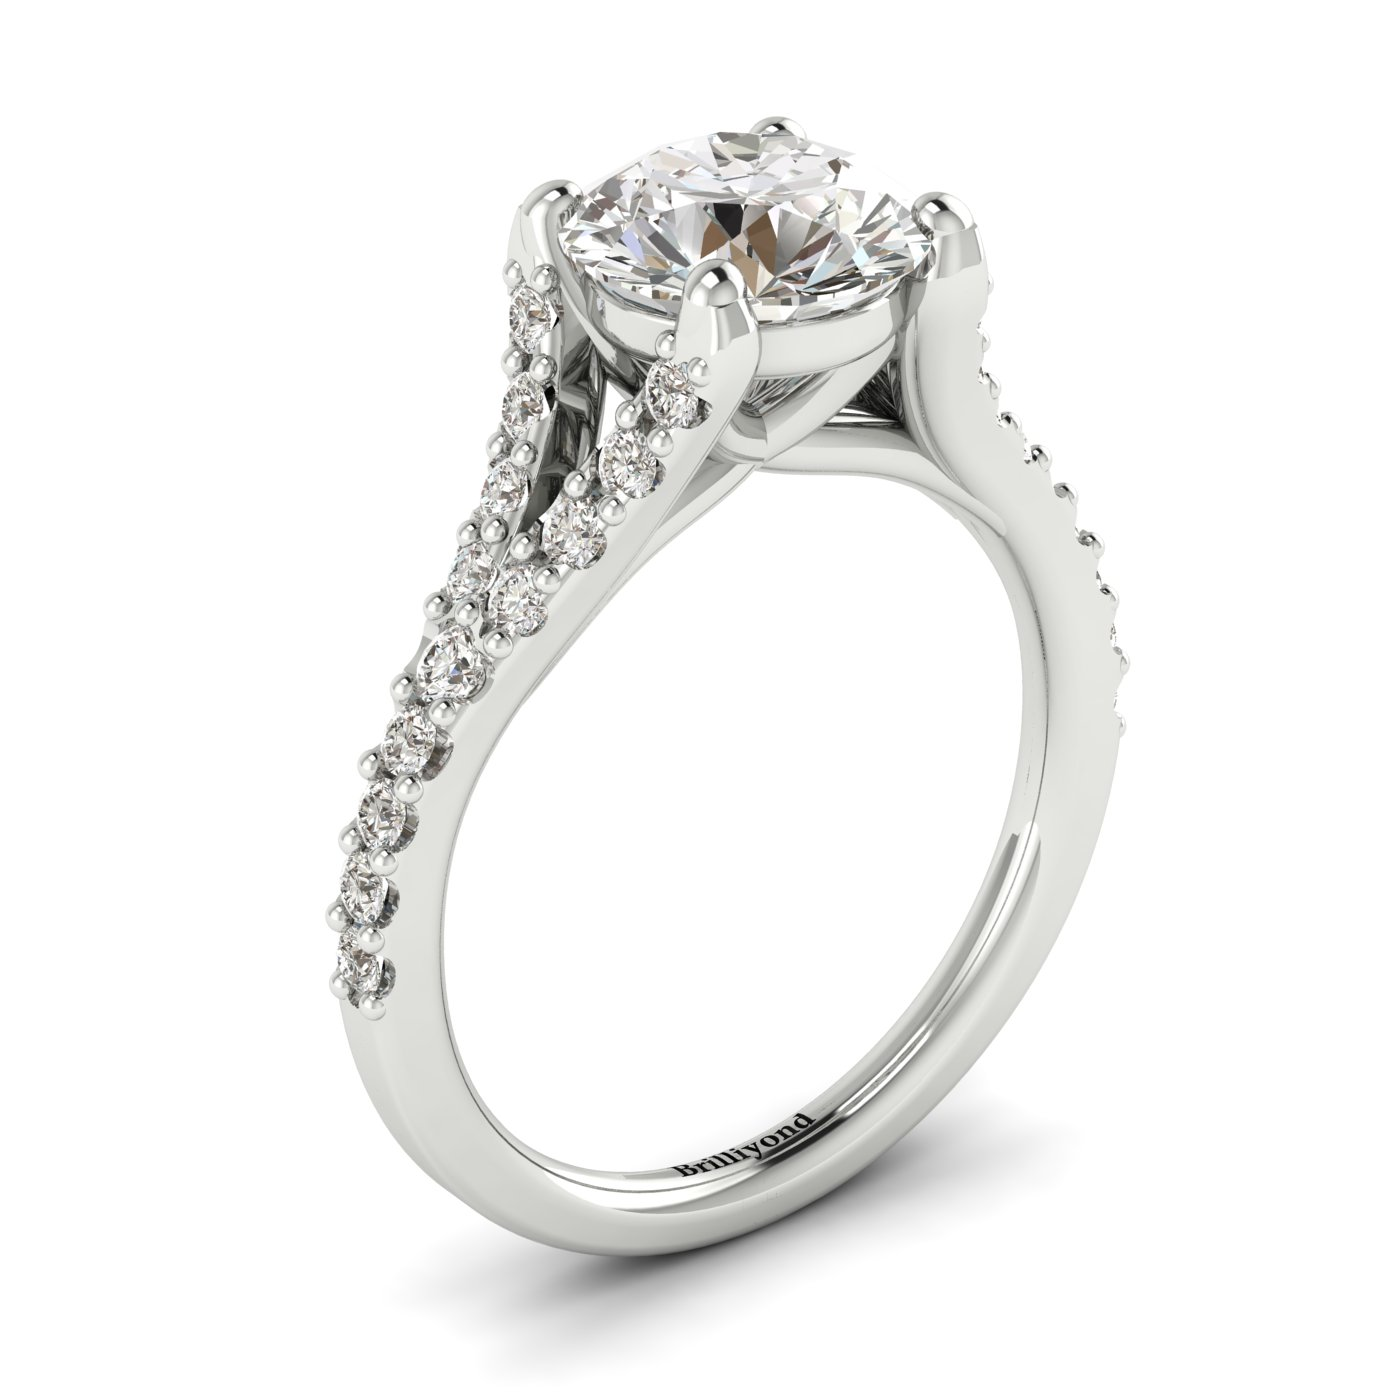 A white gold engagement ring with a round cut genuine diamond centre stone.